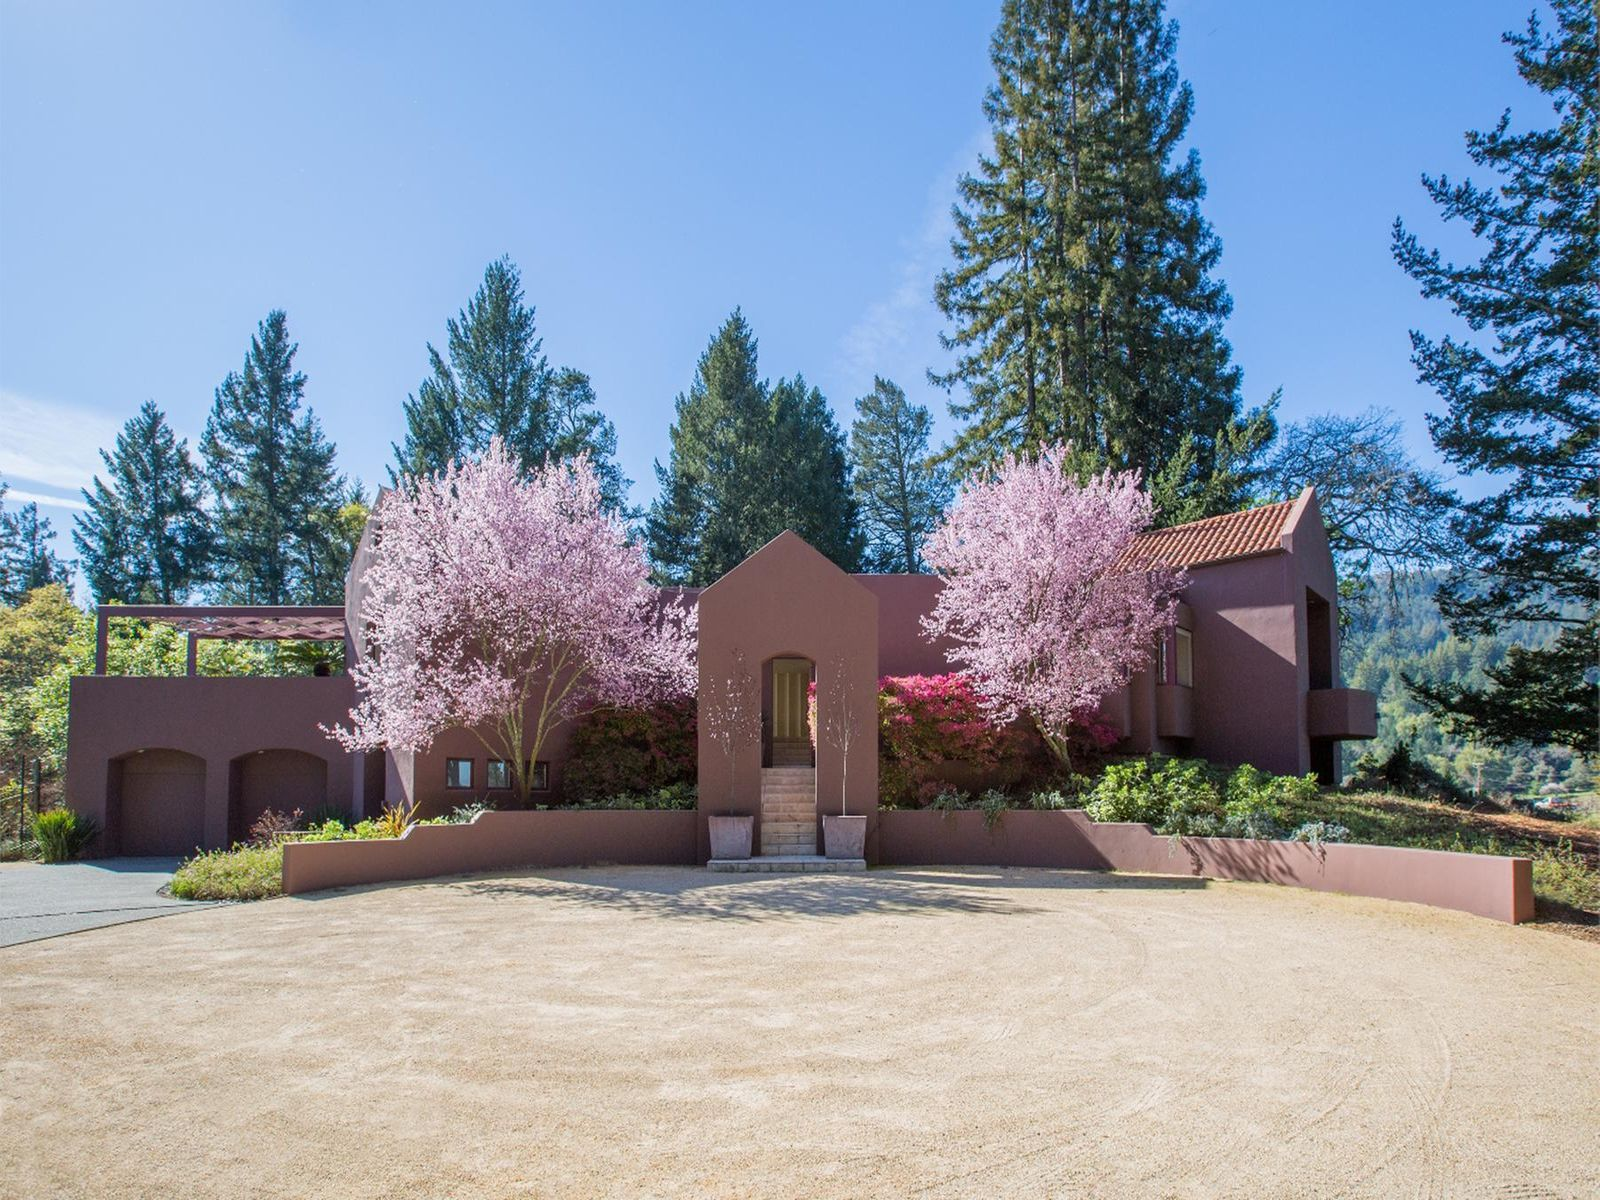 Sonoma Wine Country Contemporary Home, Glen Ellen CA Single Family Home - Sonoma - Napa Real Estate